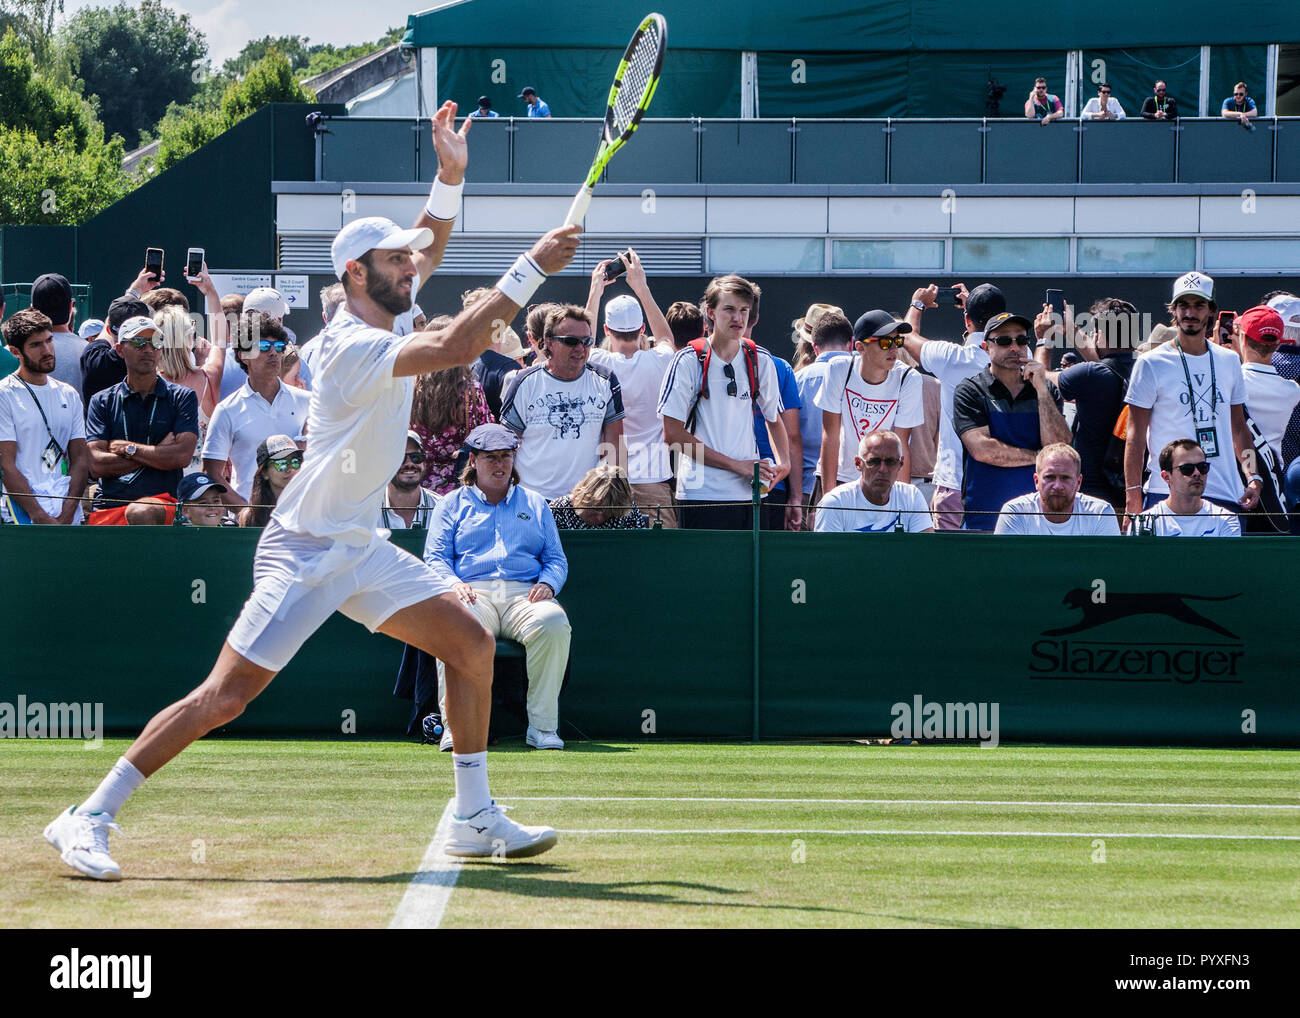 Tennis Player bei Wimbledon Meisterschaft Stockfoto